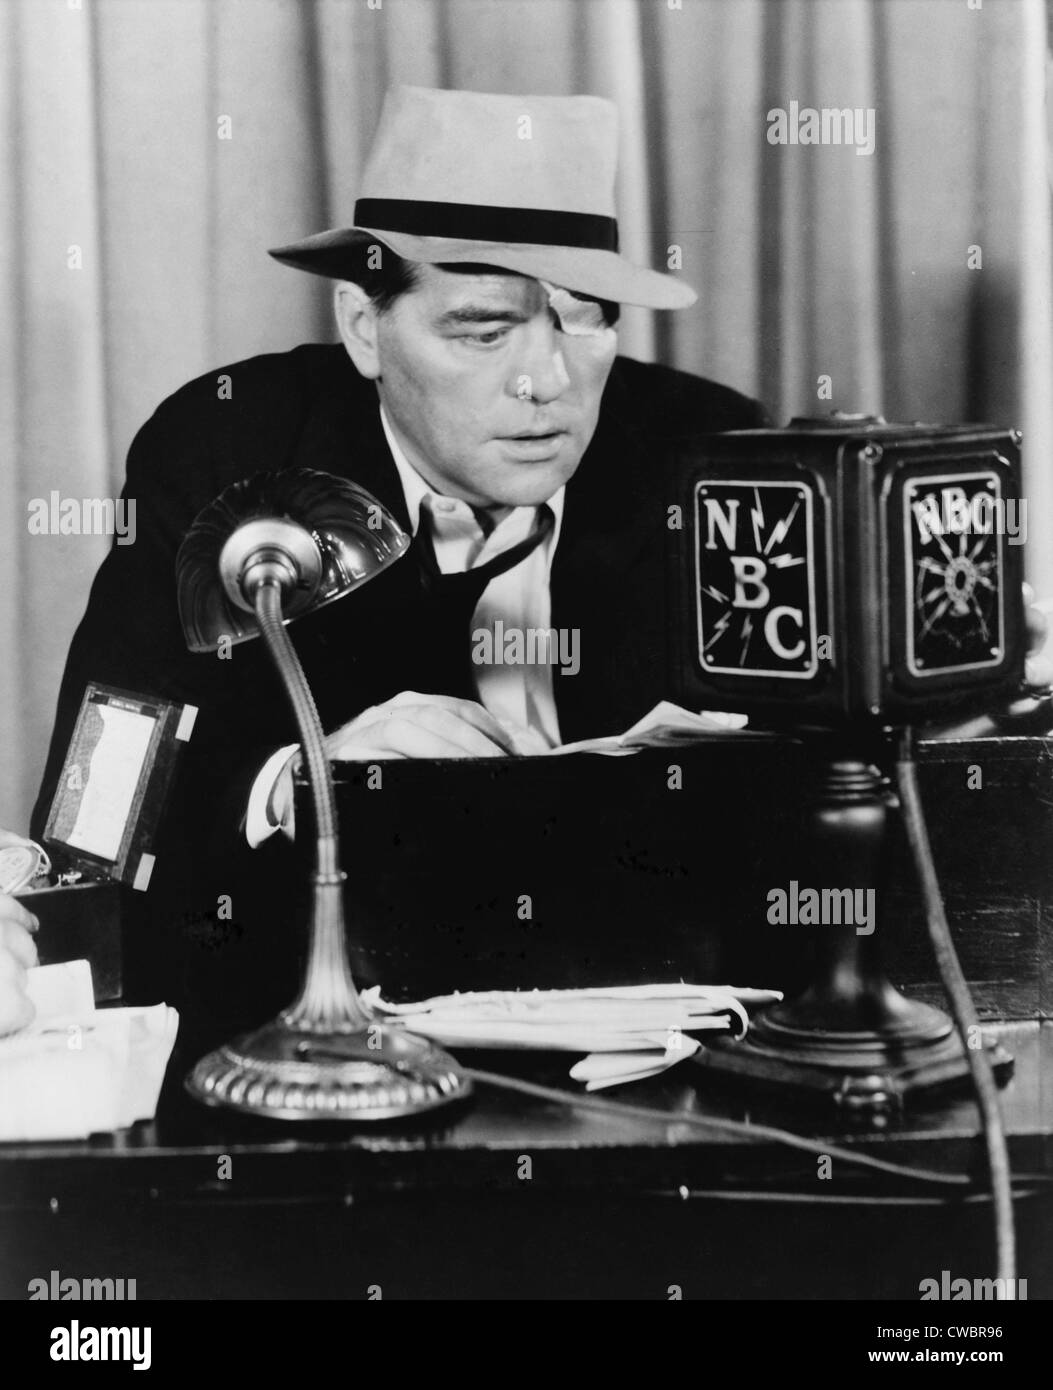 Floyd Gibbons 1887 1939 Broadcasting News Into NBC Radio Microphone In 1930 Won Fame As A War Correspondent Who